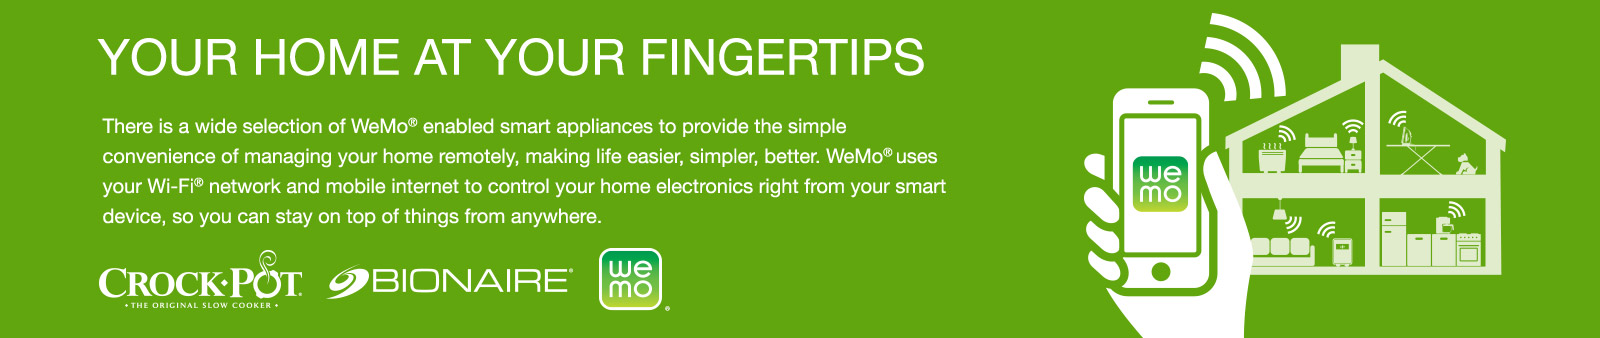 Your home at your fingertips